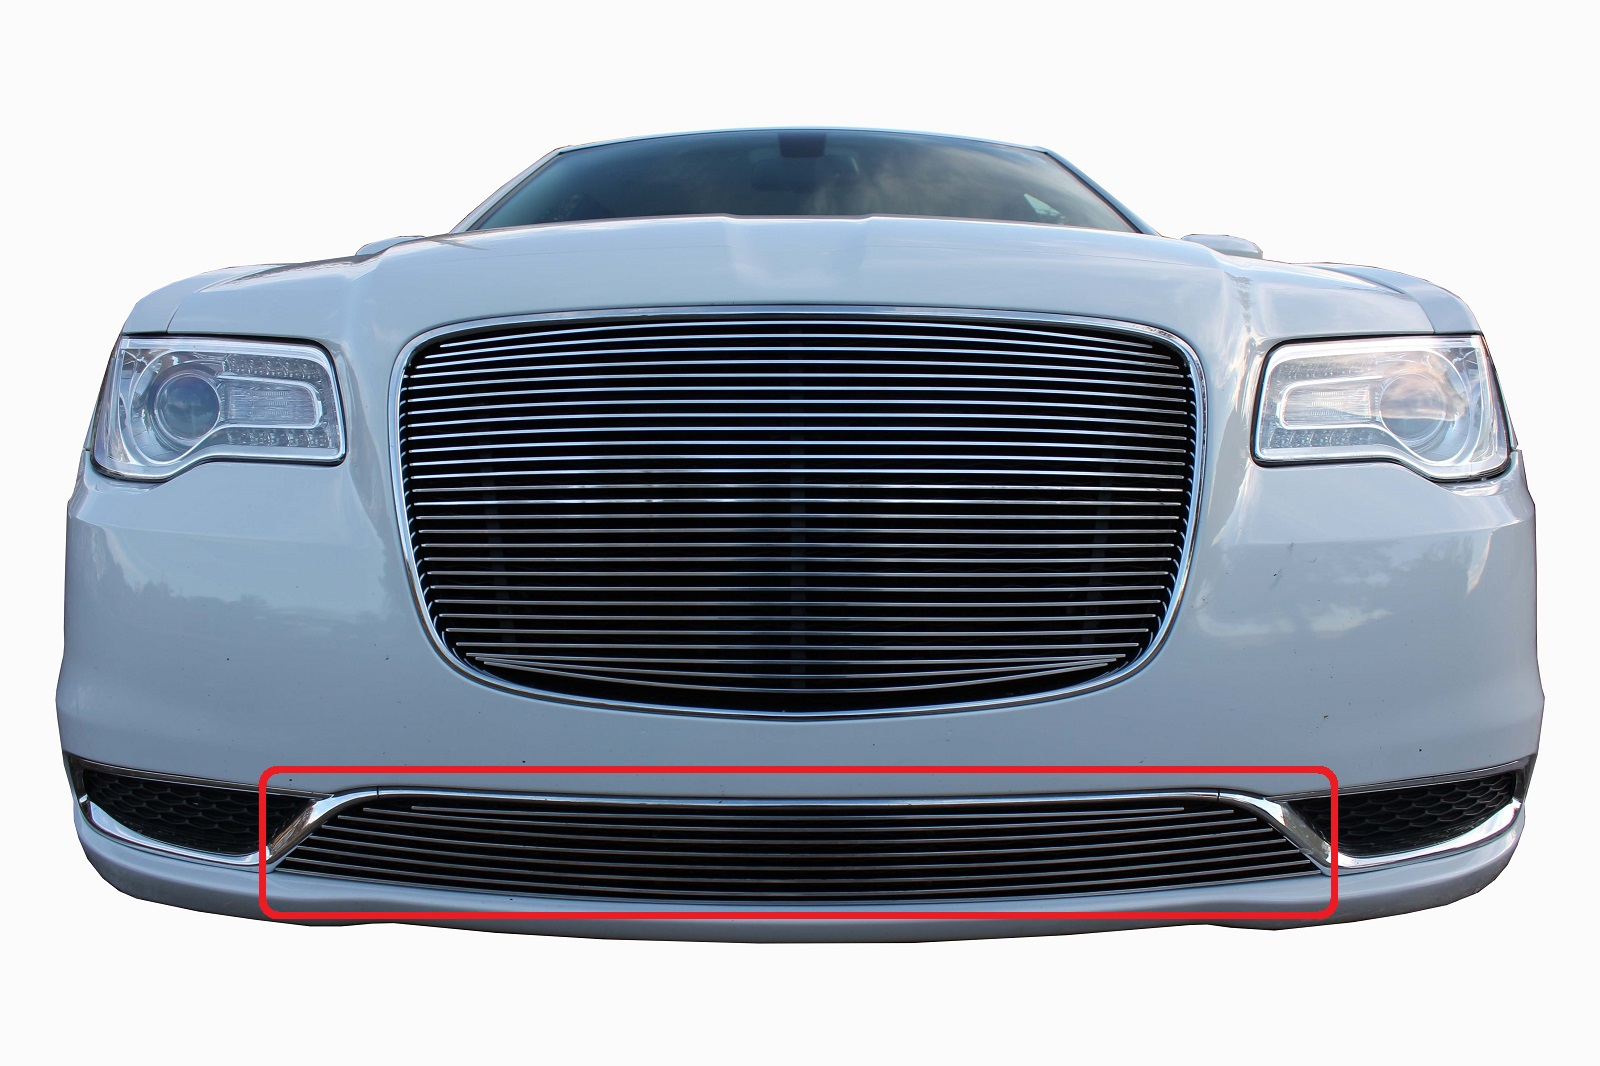 2016 chrysler 300c cars trucks billet mesh grille 39 s. Black Bedroom Furniture Sets. Home Design Ideas